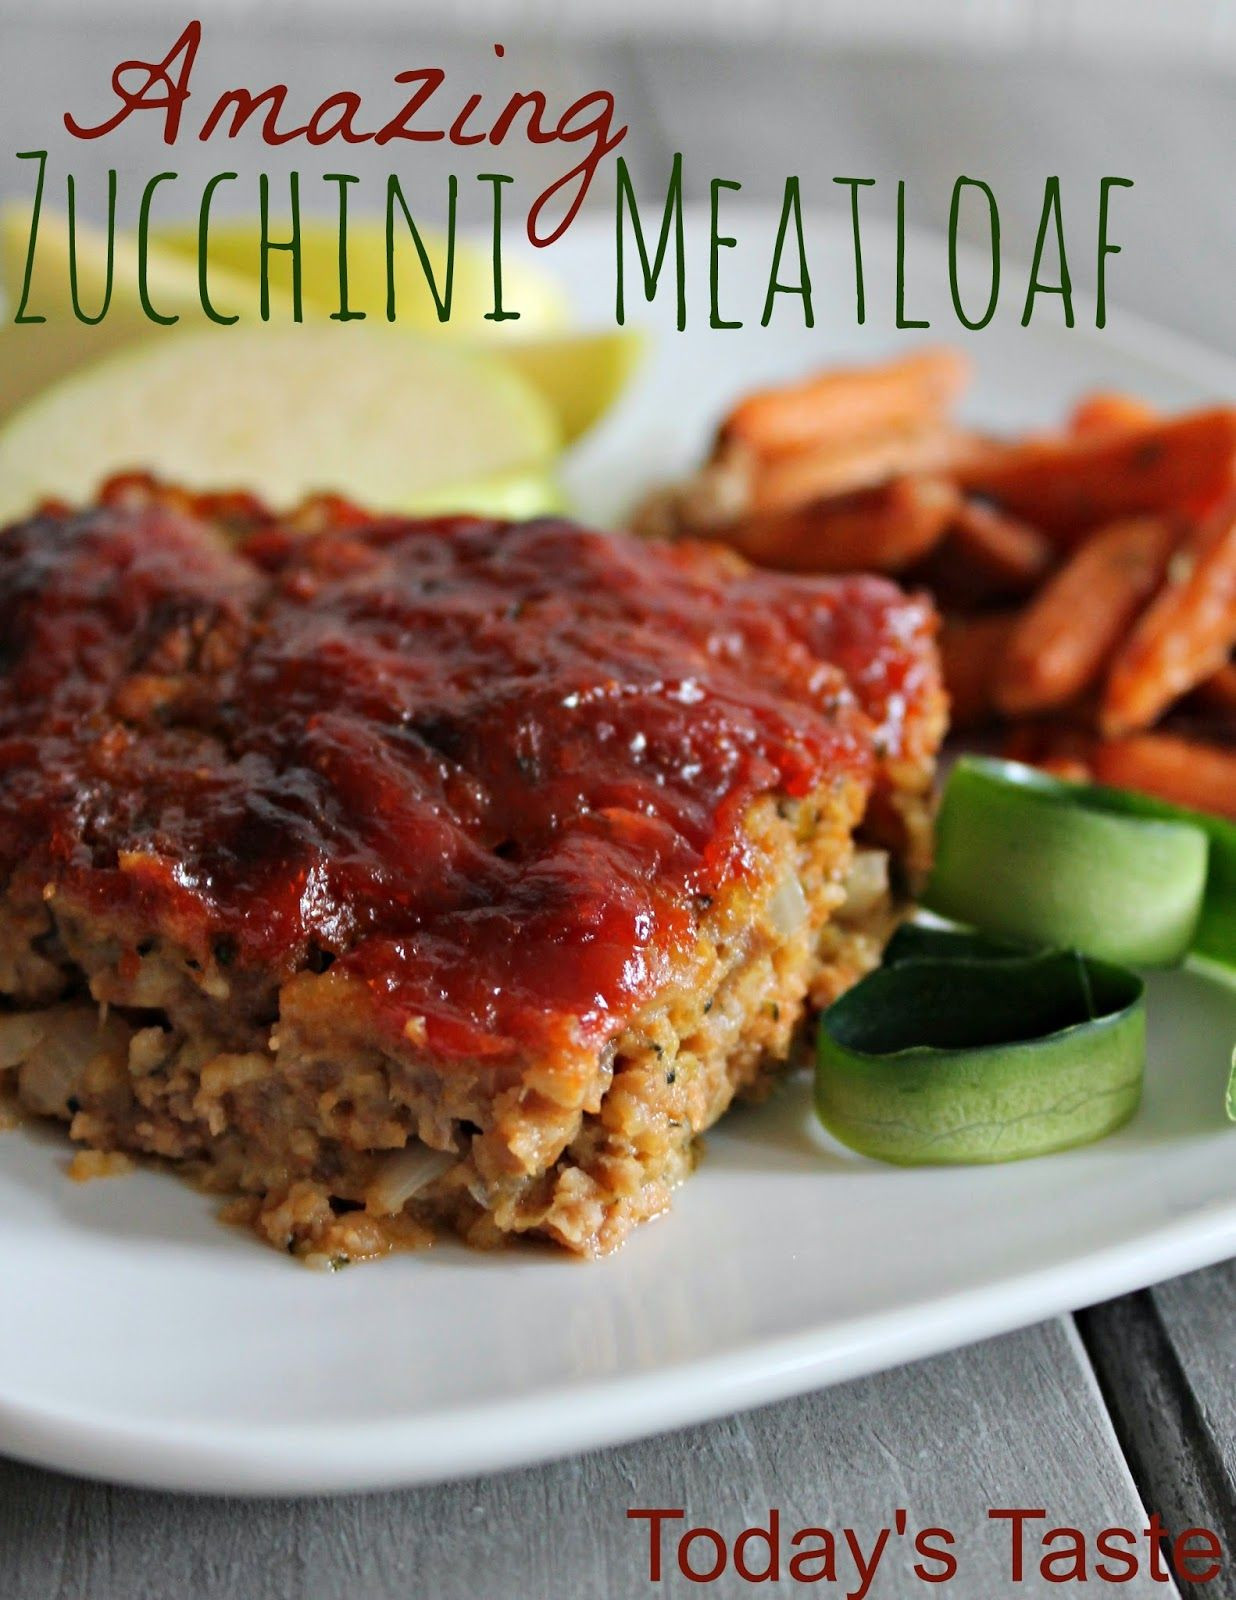 Healthy Ground Turkey Meatloaf  Today s Taste Amazing Zucchini Meatloaf The Zucchini